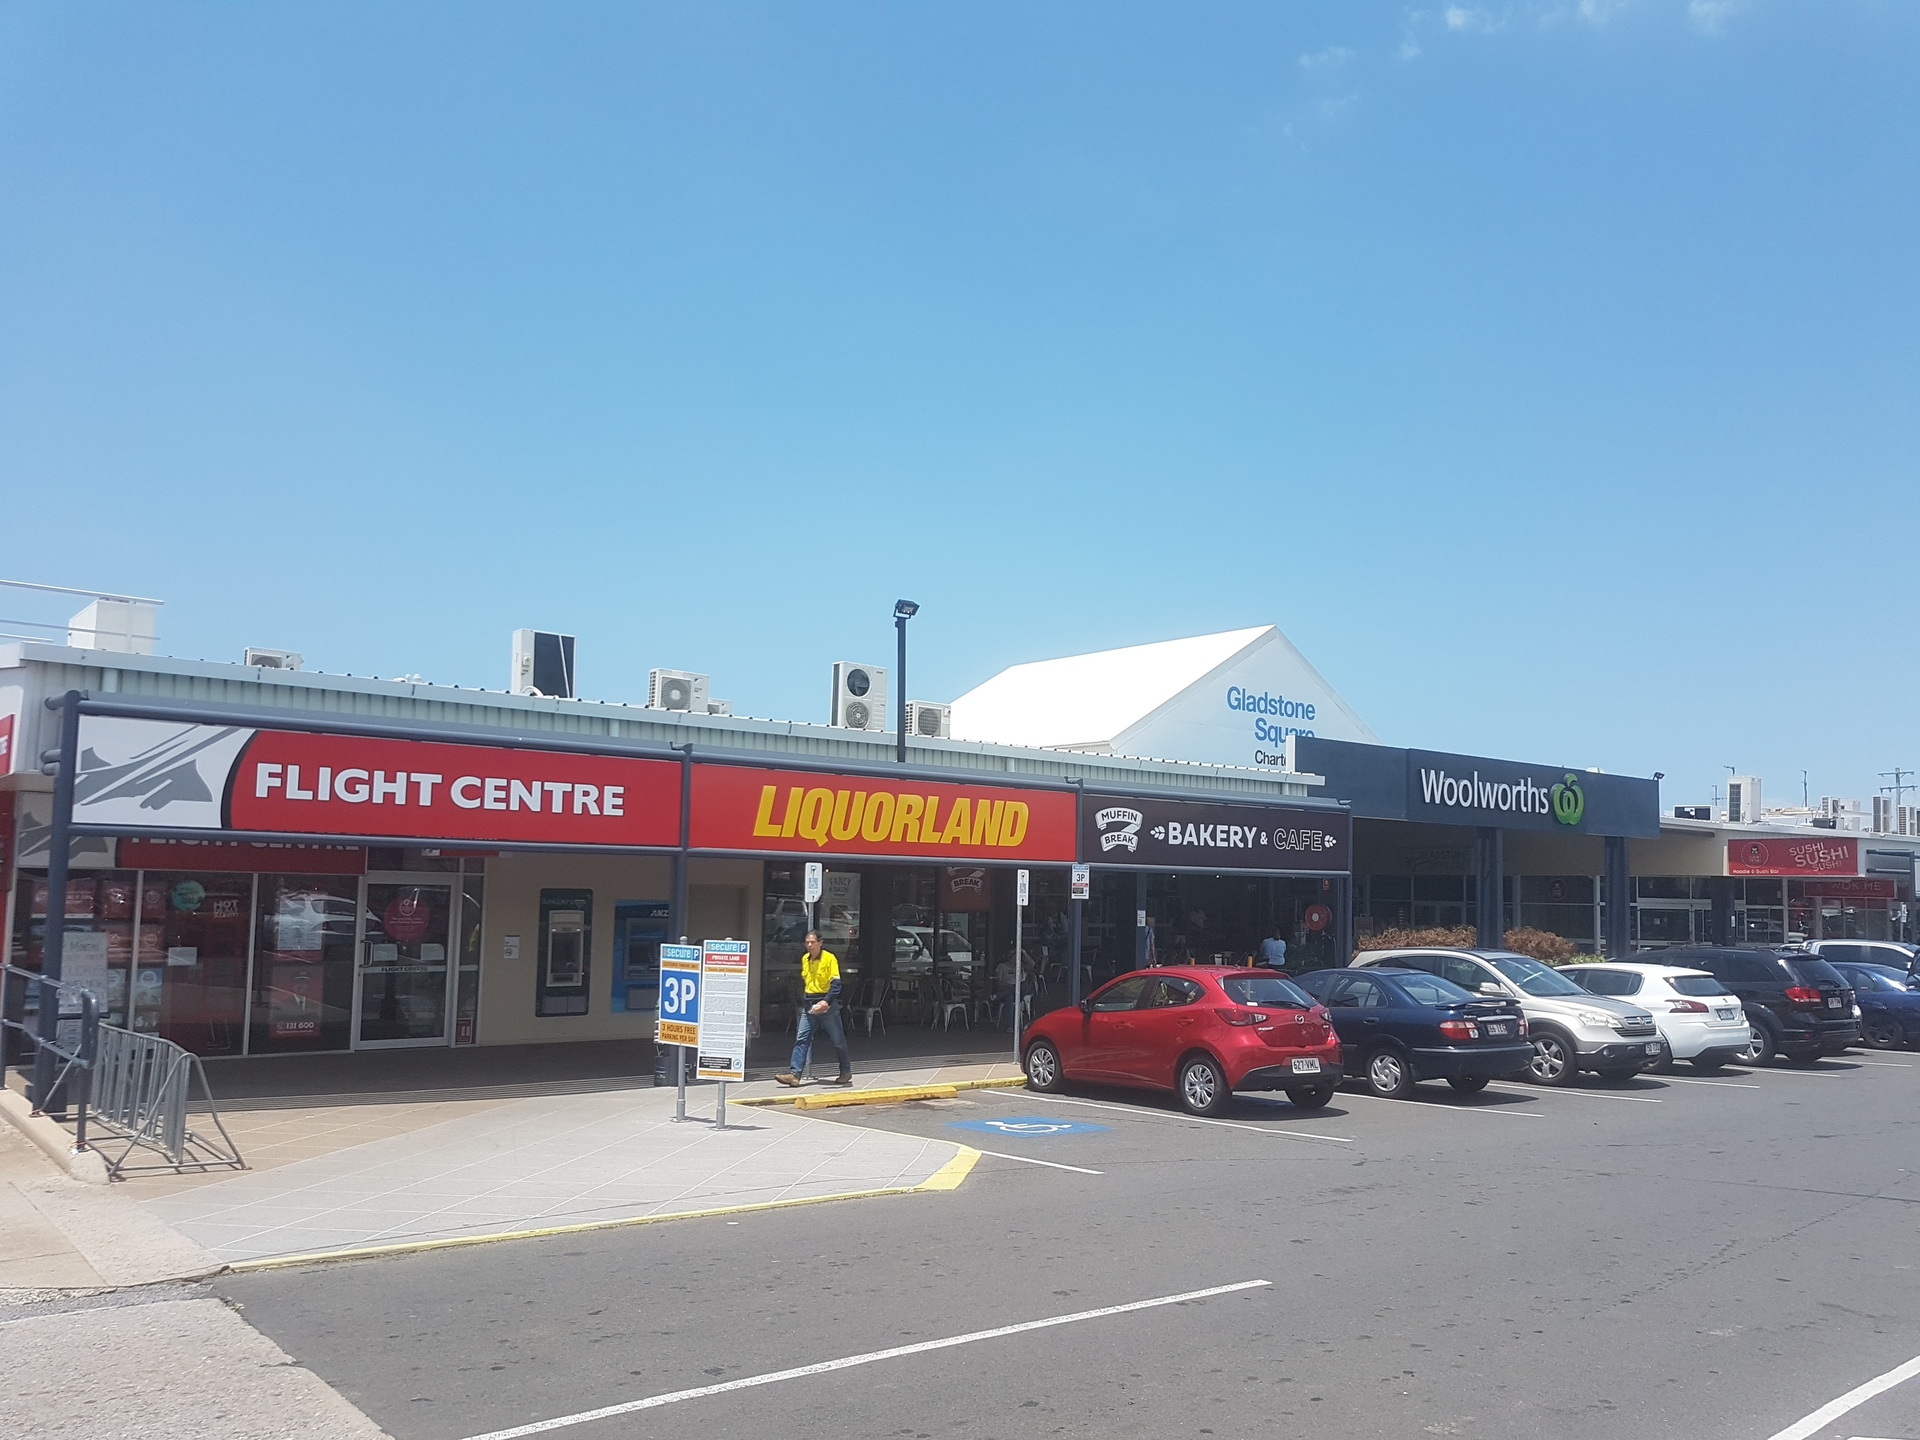 Retail to rent in GLADSTONE CENTRAL, QLD 4680 - 3956939O